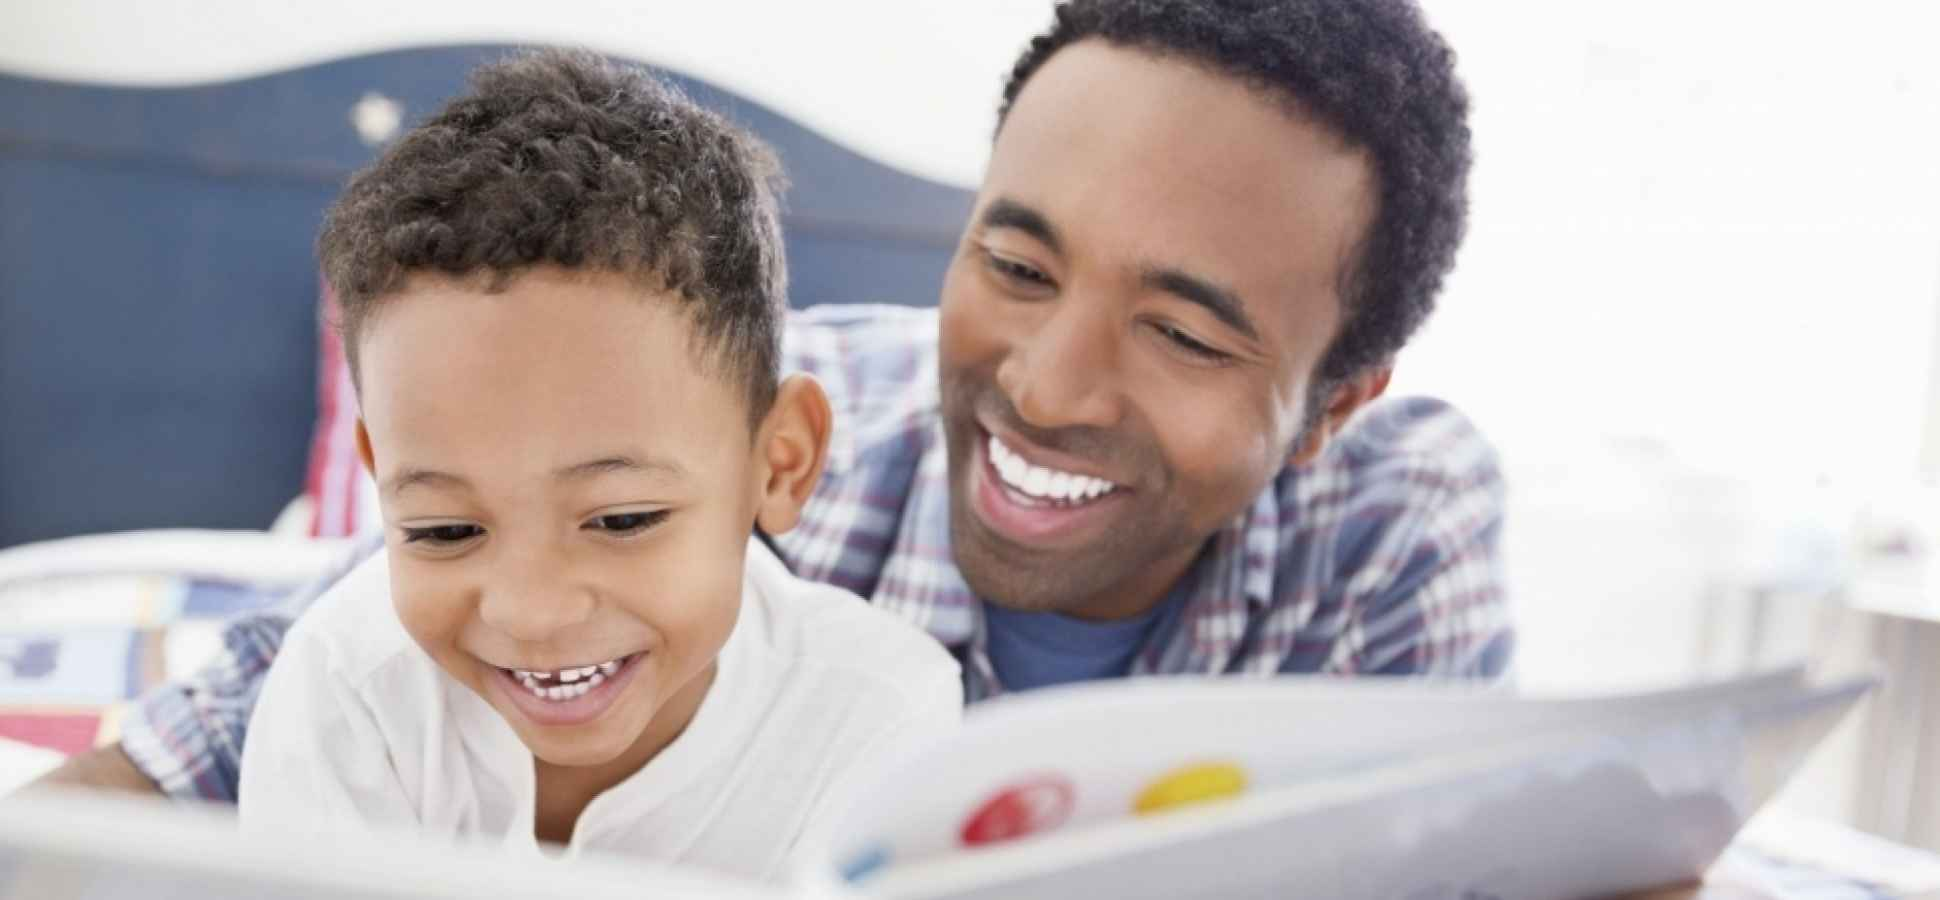 Want Your Kids to Be Successful and Happy? Research Recommends This Parenting Style